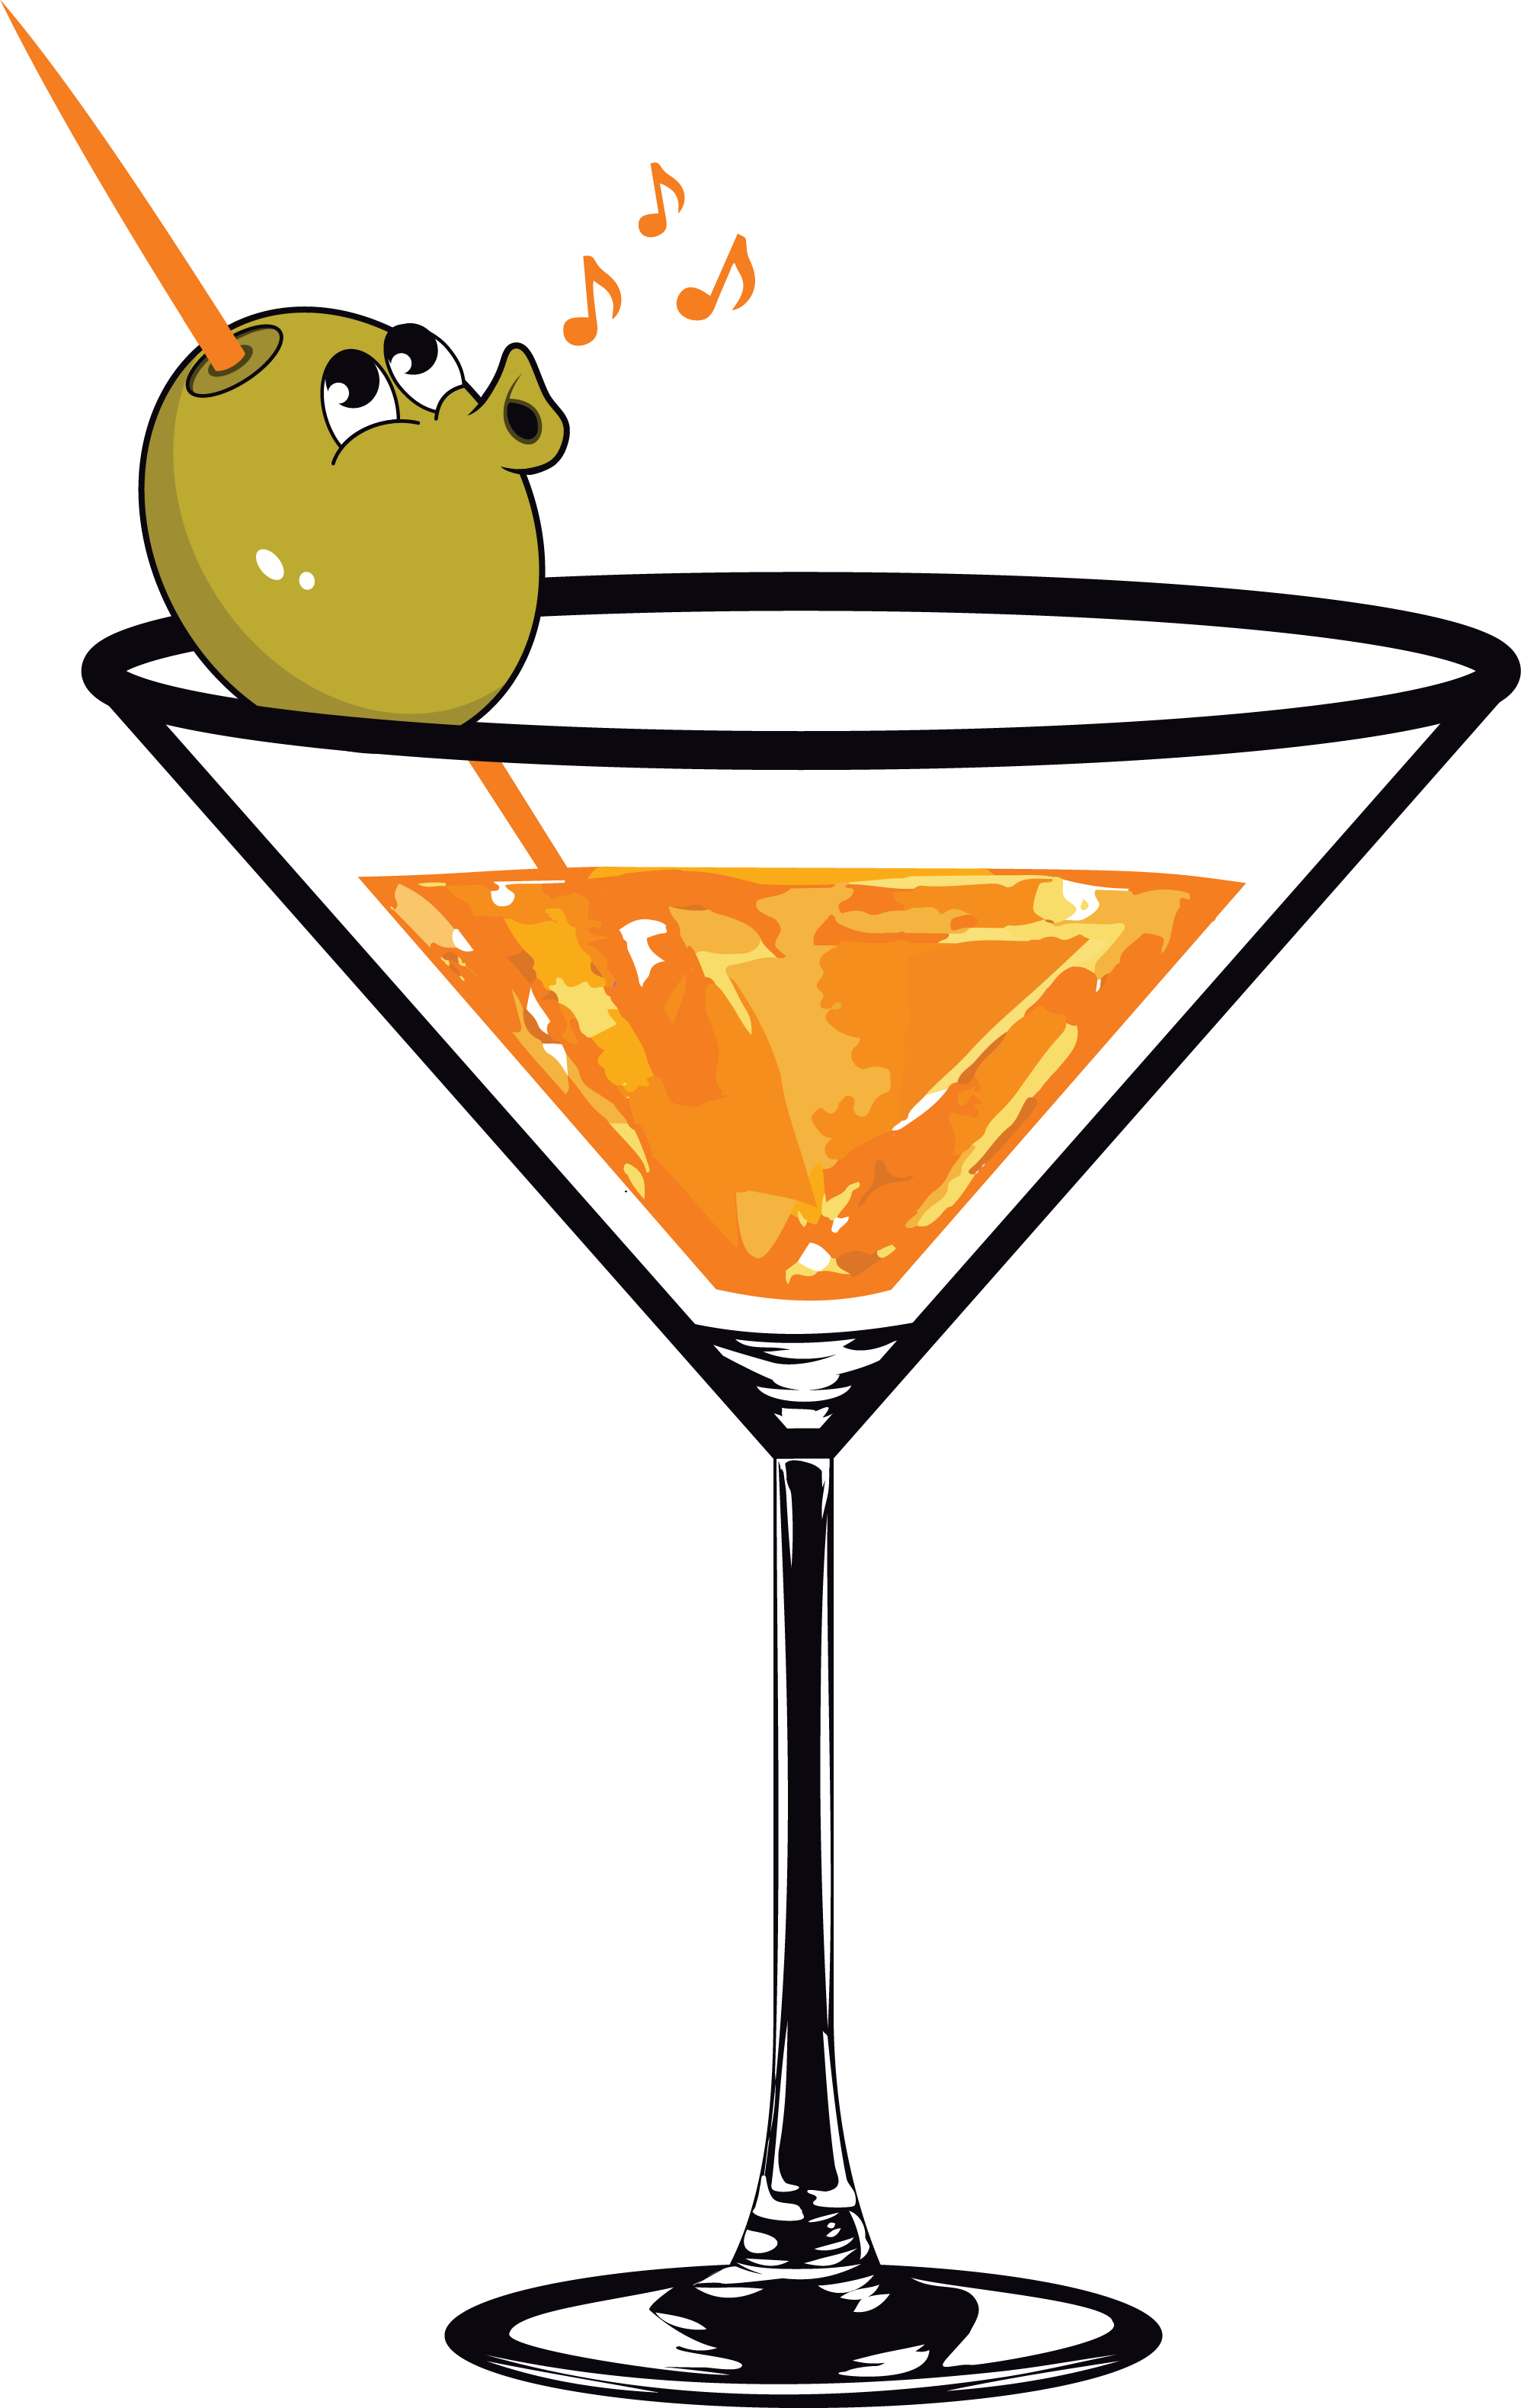 We need a Martini glass with a whistling olive in it. Be creative!